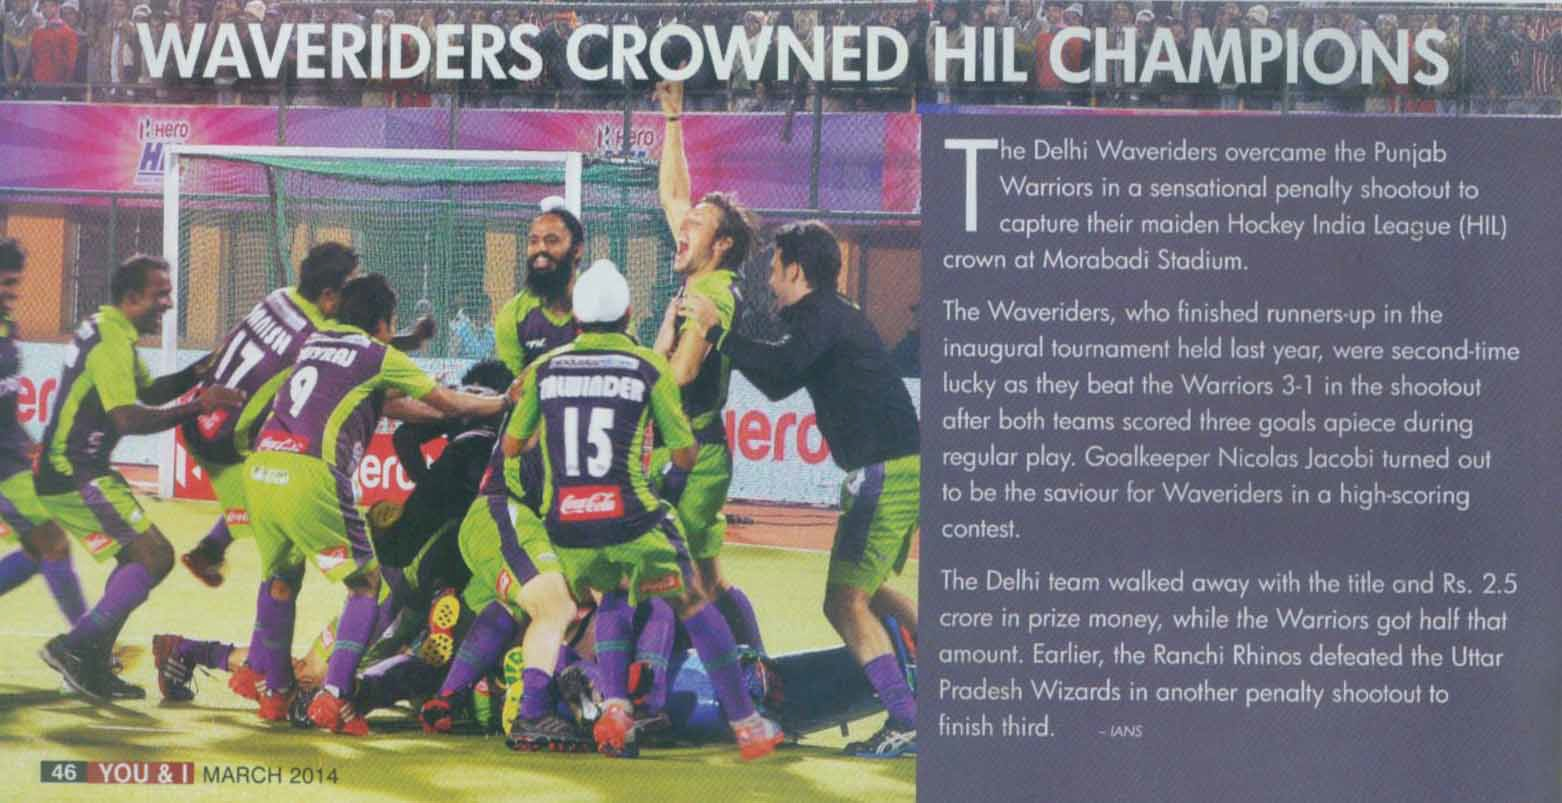 The Delhi Waveriders overcame the Punjab Warriors in a sensational penalty shootout to capture their maiden Hockey India League (HIL) crown at Morabadi Stadium